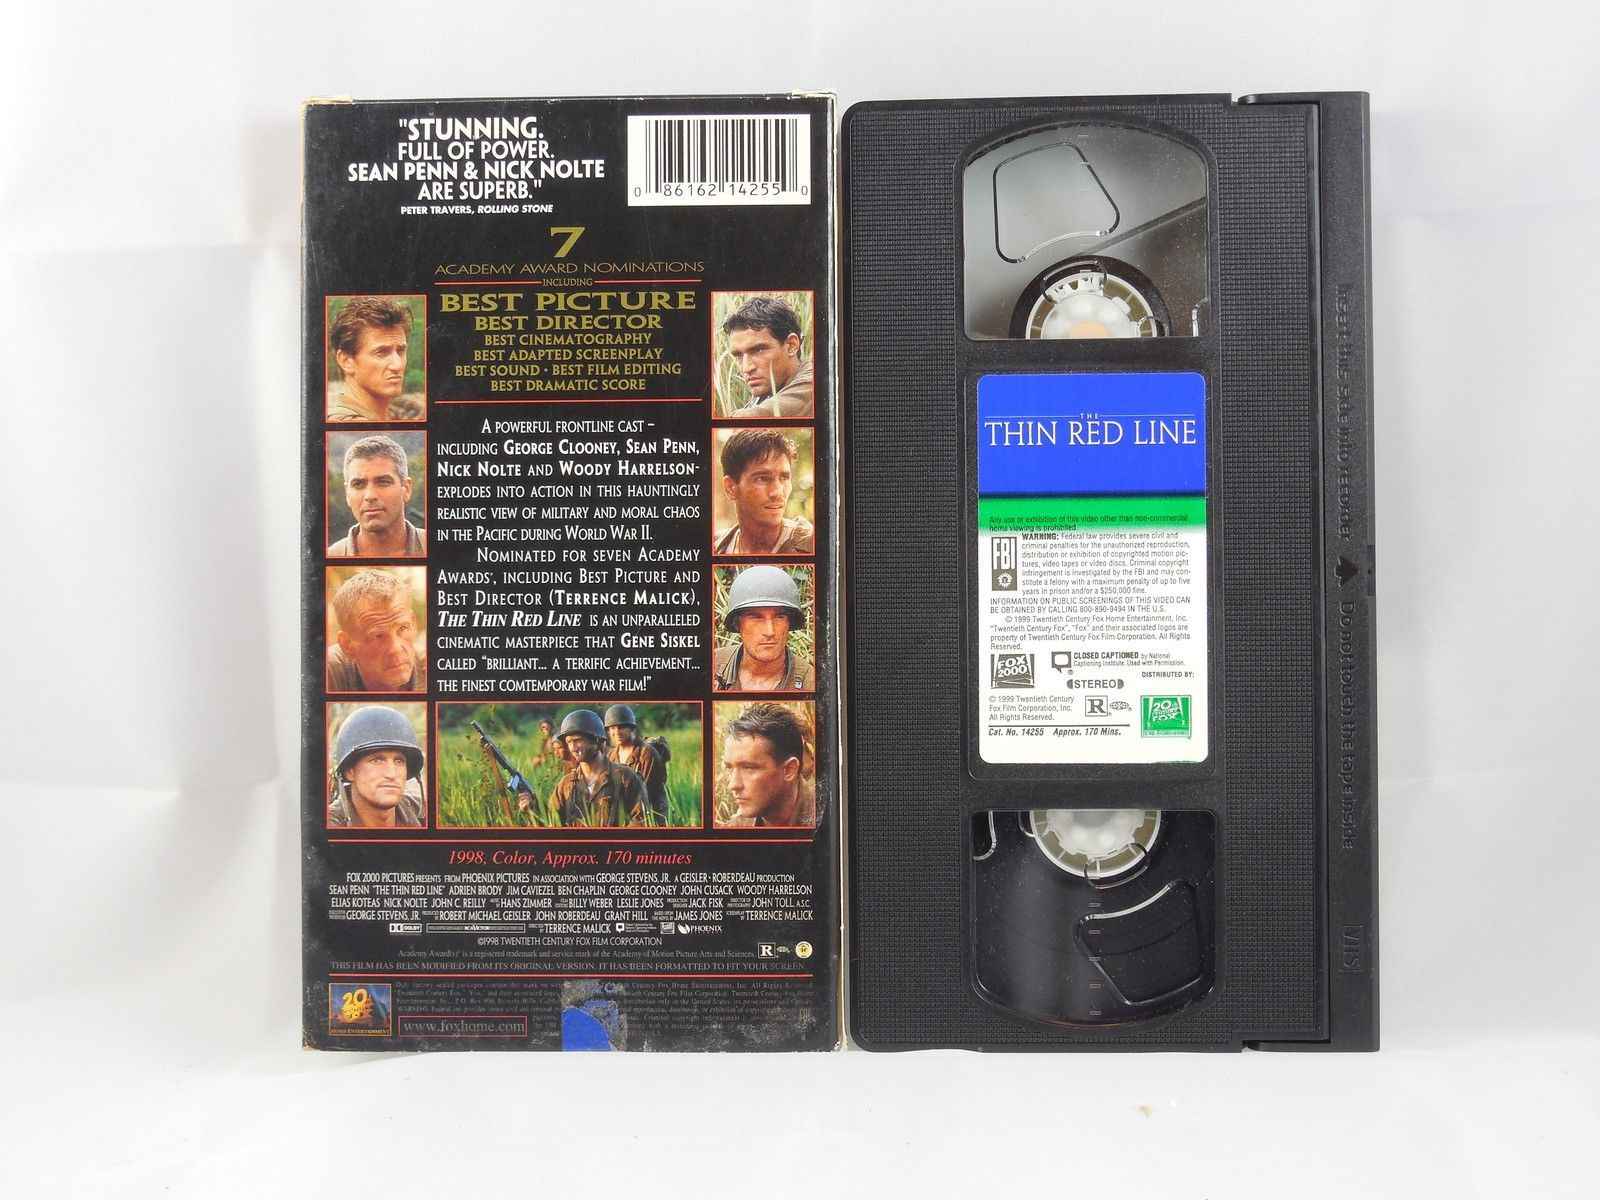 The Thin Red Line (VHS, 1999) image 2